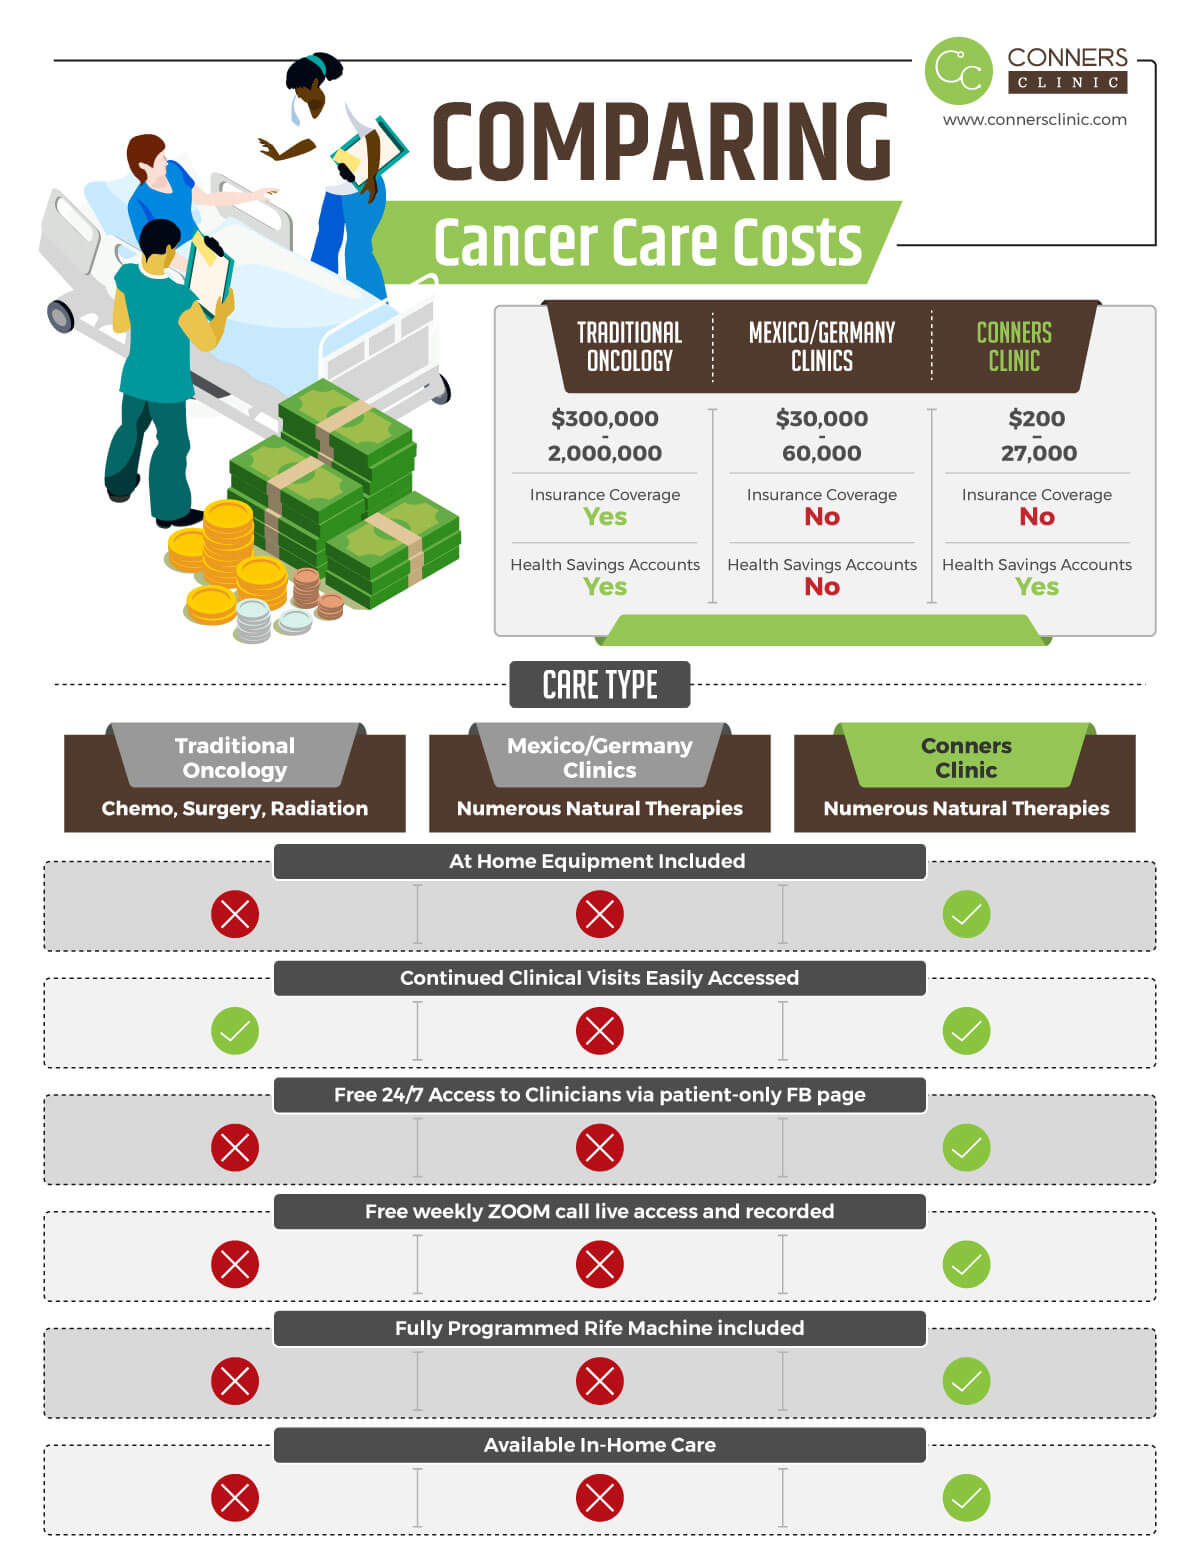 Comparing-Cancer-Care-Costs-Conners-Clinic-1200